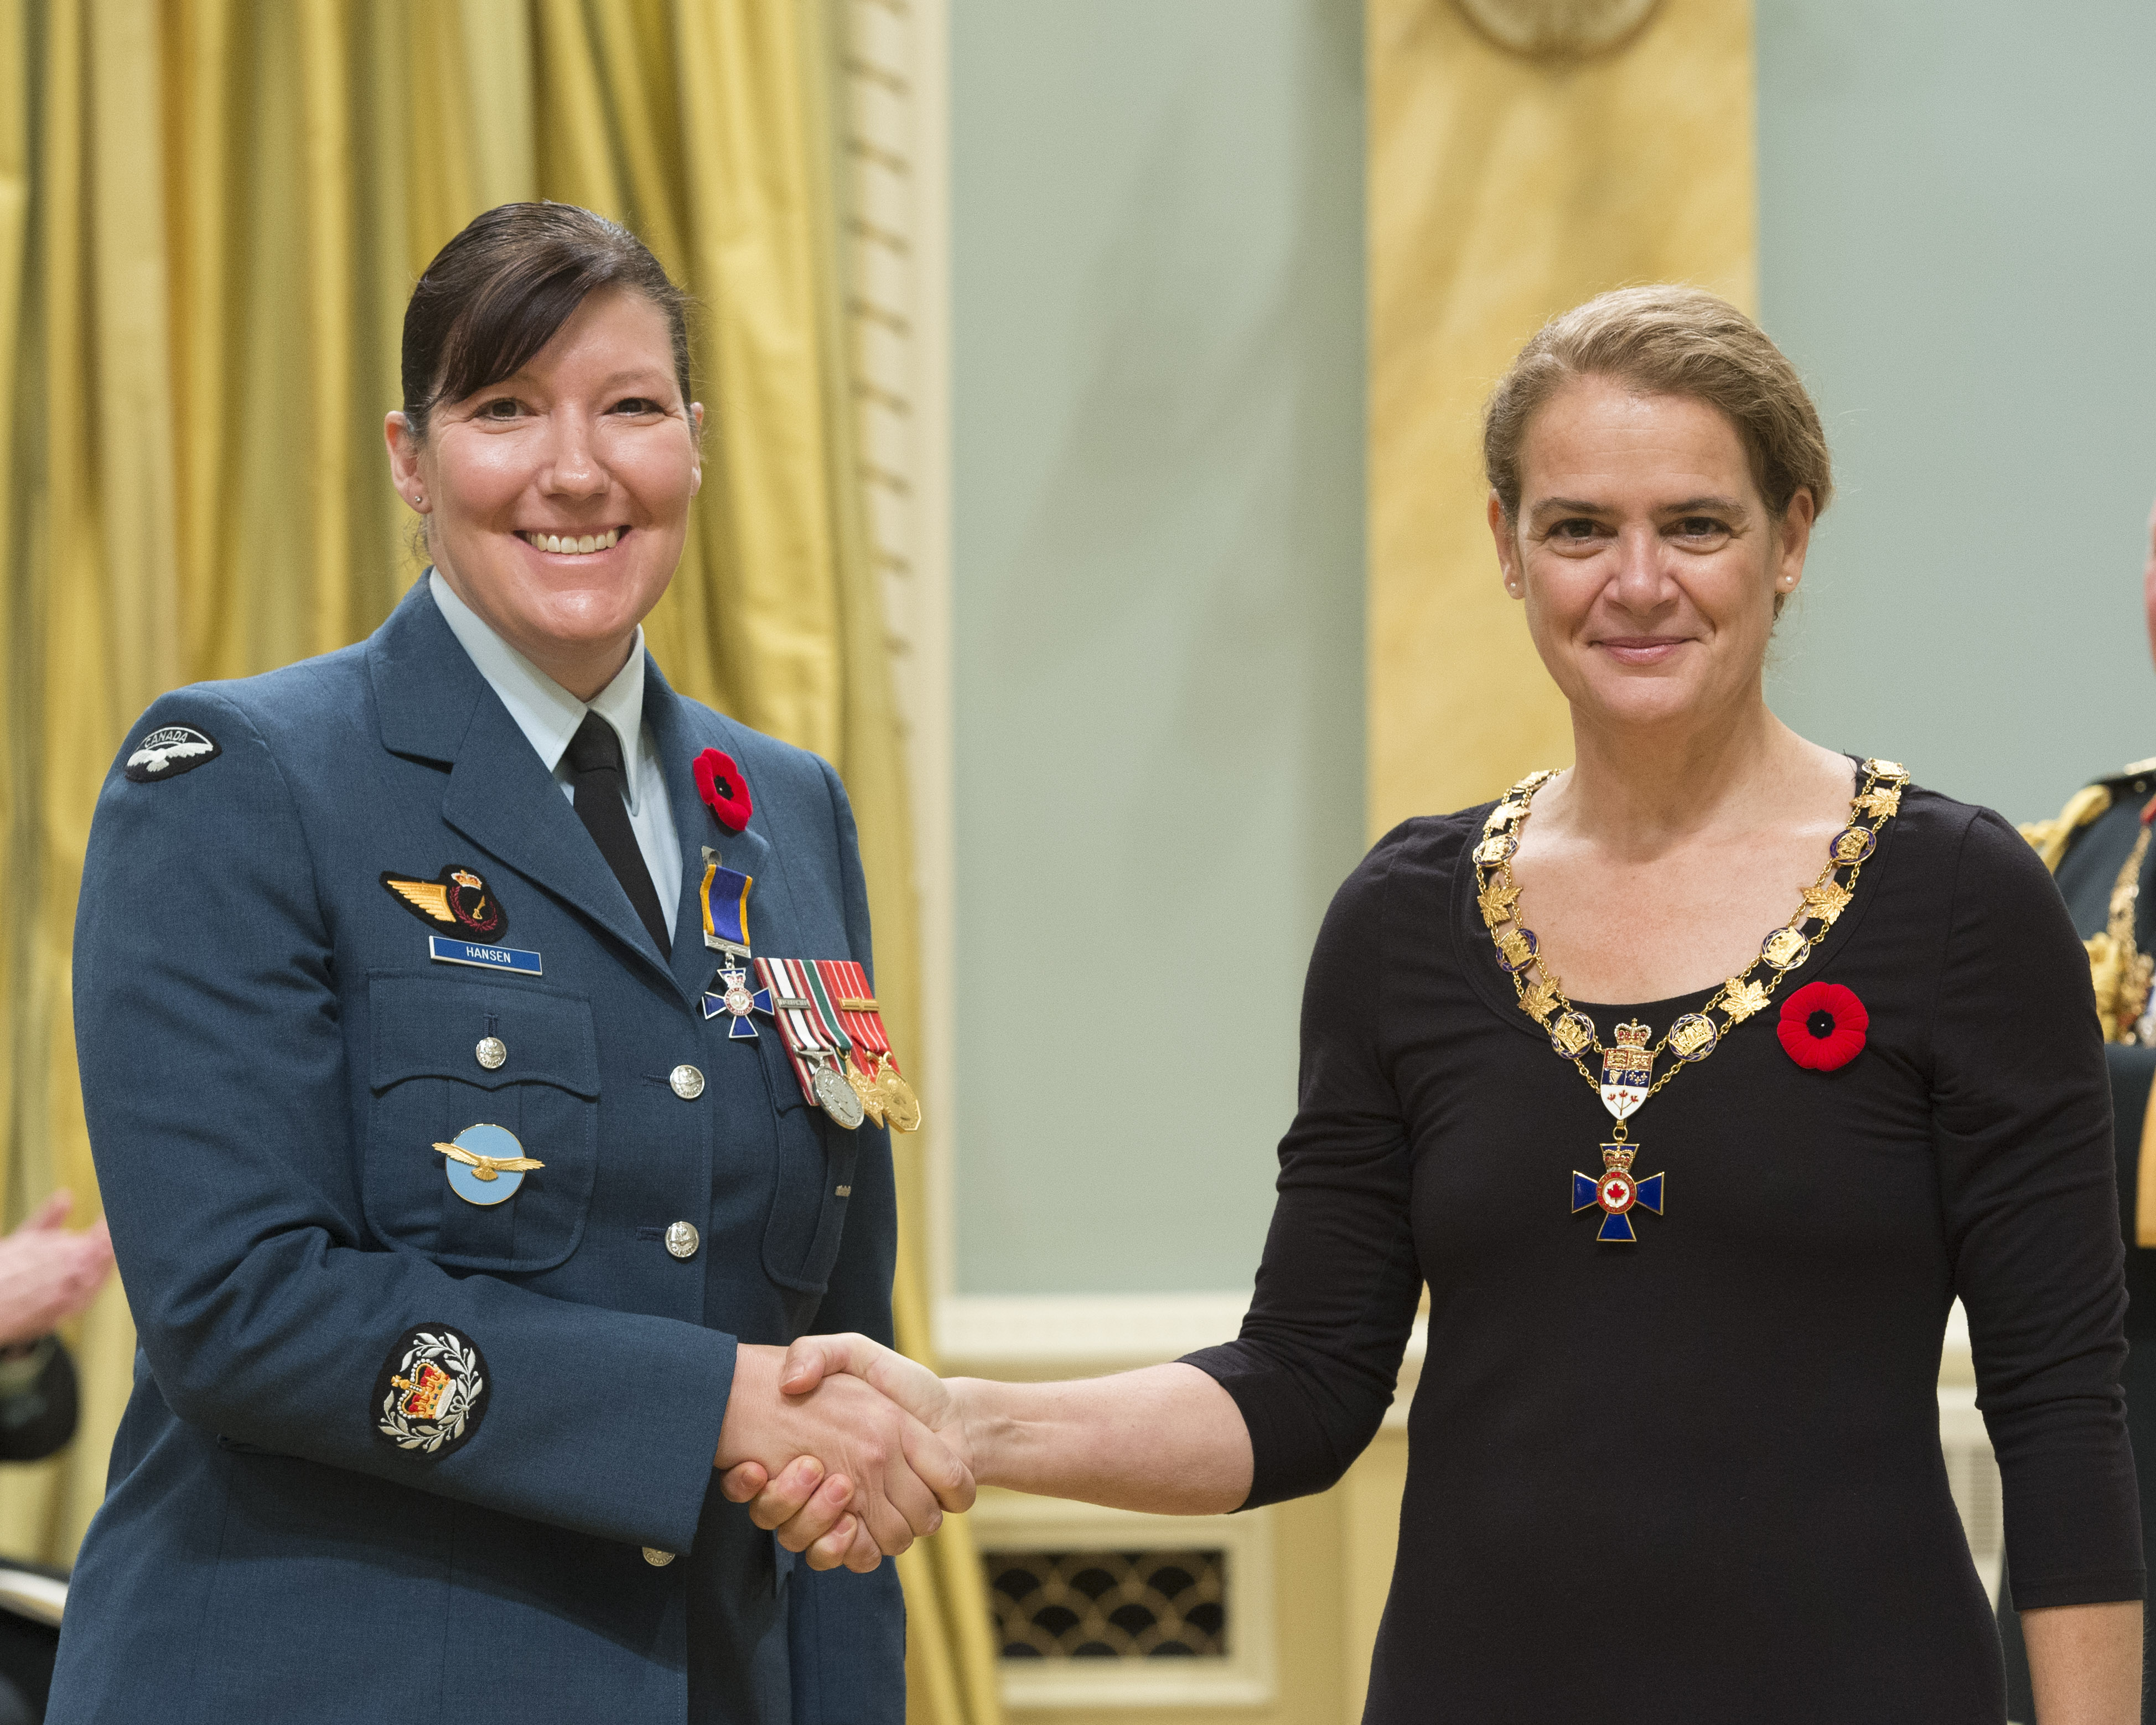 Governor General and Commander-in-Chief of Canada Julie Payette inducts Master Warrant Officer Renee Joyce Hansen, Office of Director General Military Careers, Ottawa, Ontario, into the Order of Military Merit at Rideau Hall on November 10, 2017. PHOTO: Sergeant Johanie Maheu, Rideau Hall © OSGG, GG05-2017-0395-038